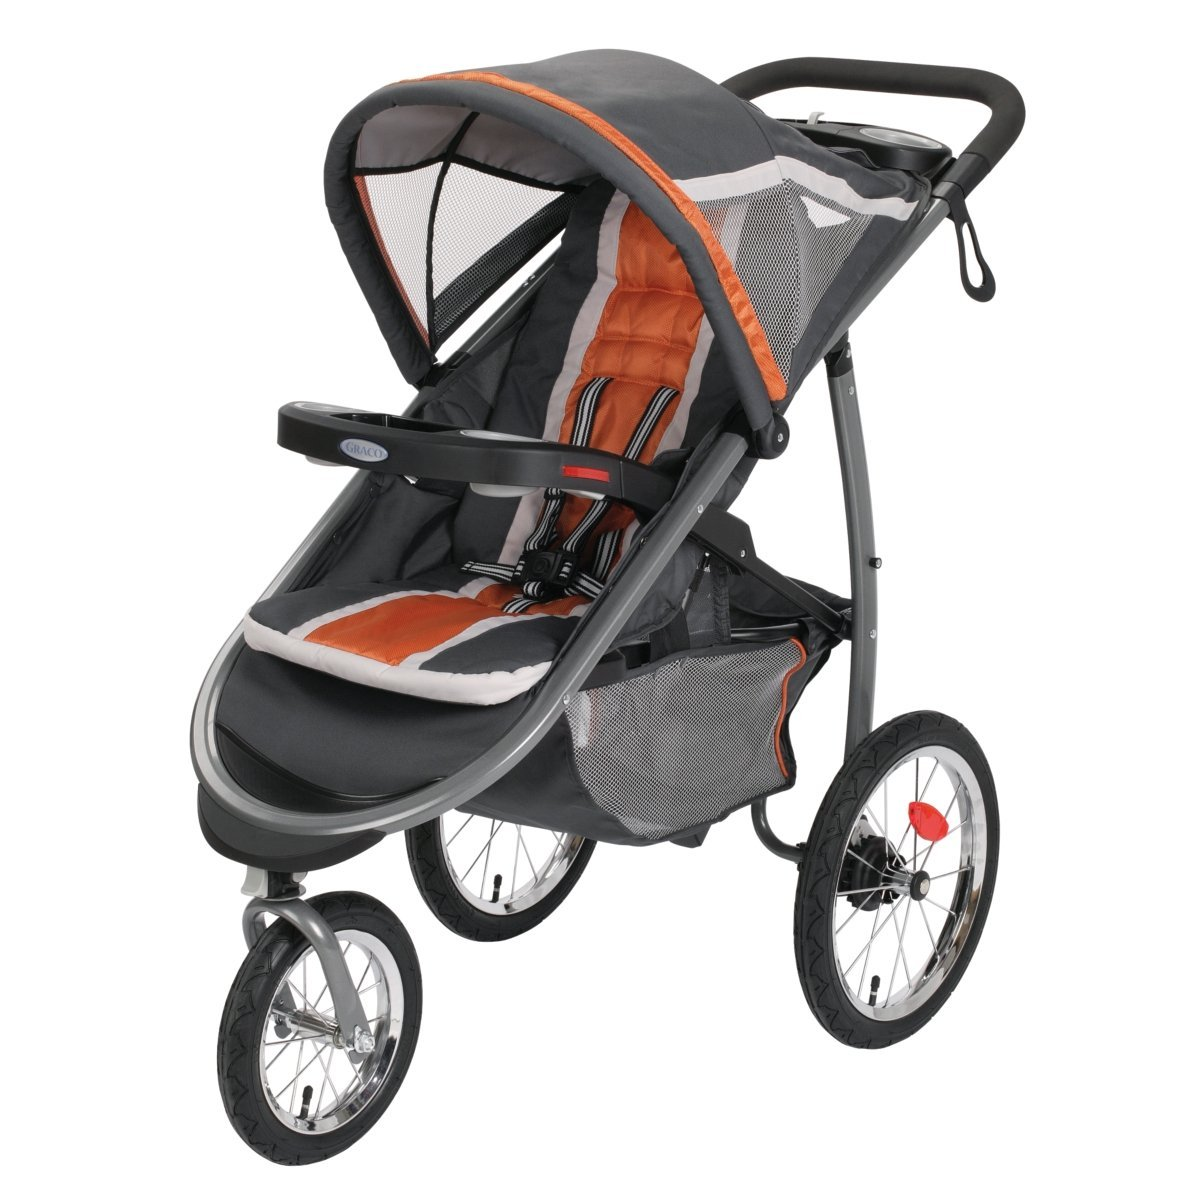 Graco Fast Action Fold Jogger Travel System Reviews